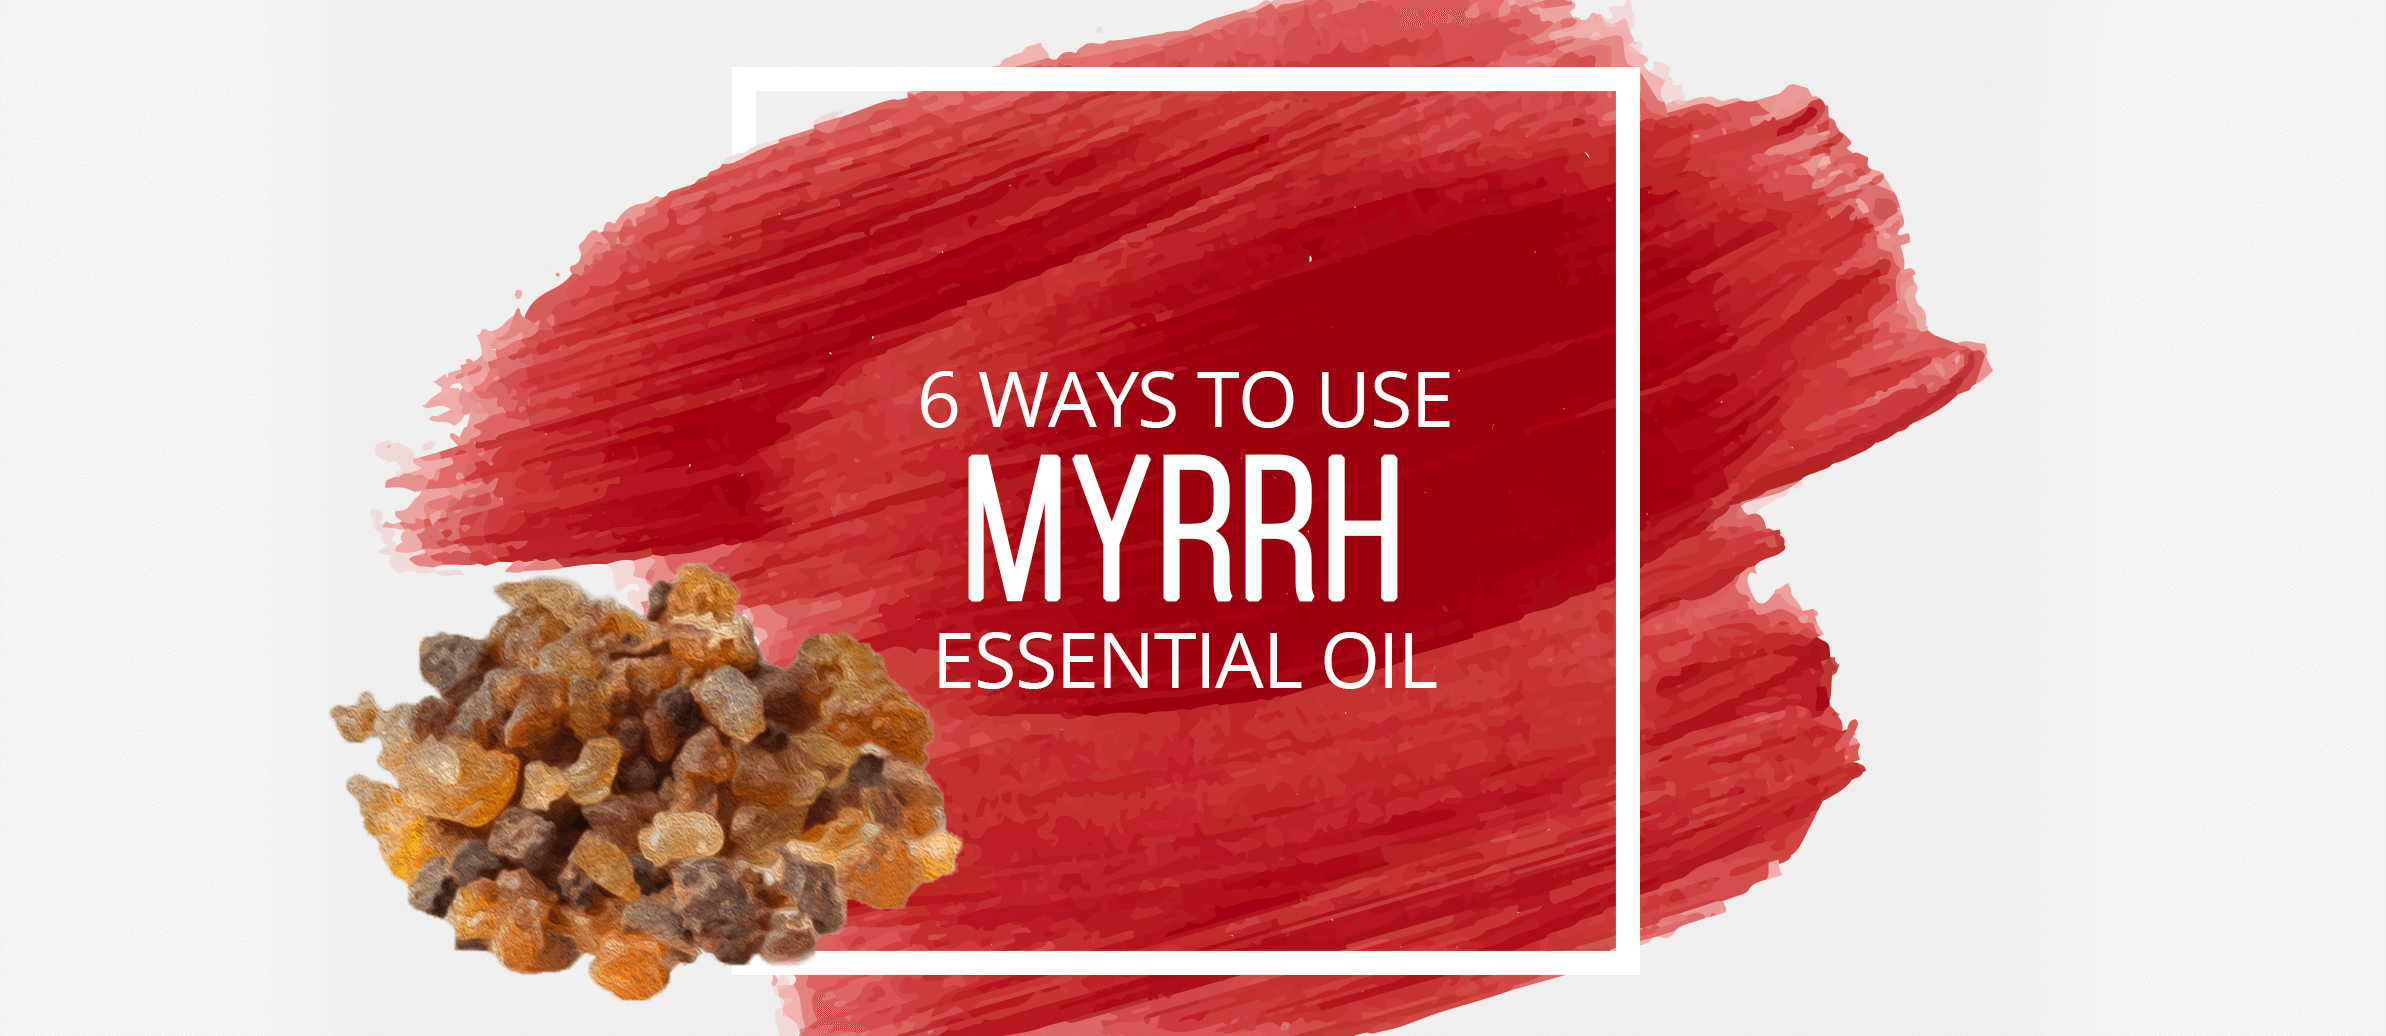 6 Ways to Use Myrrh Essential Oil